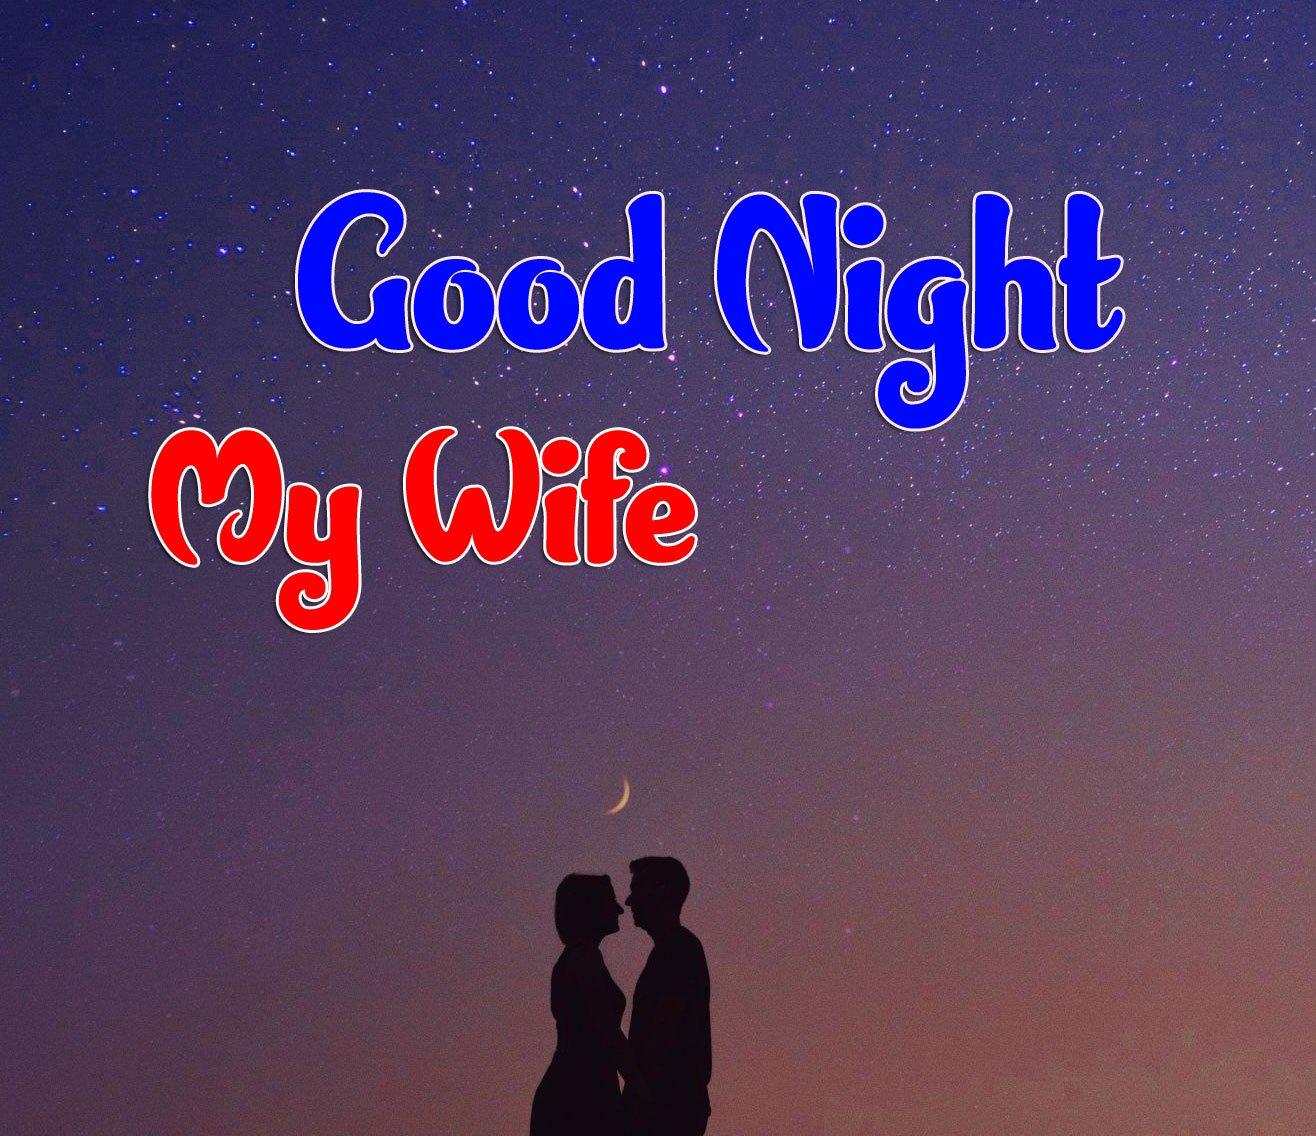 Girlfriend Good Night Wishes Pics New Download